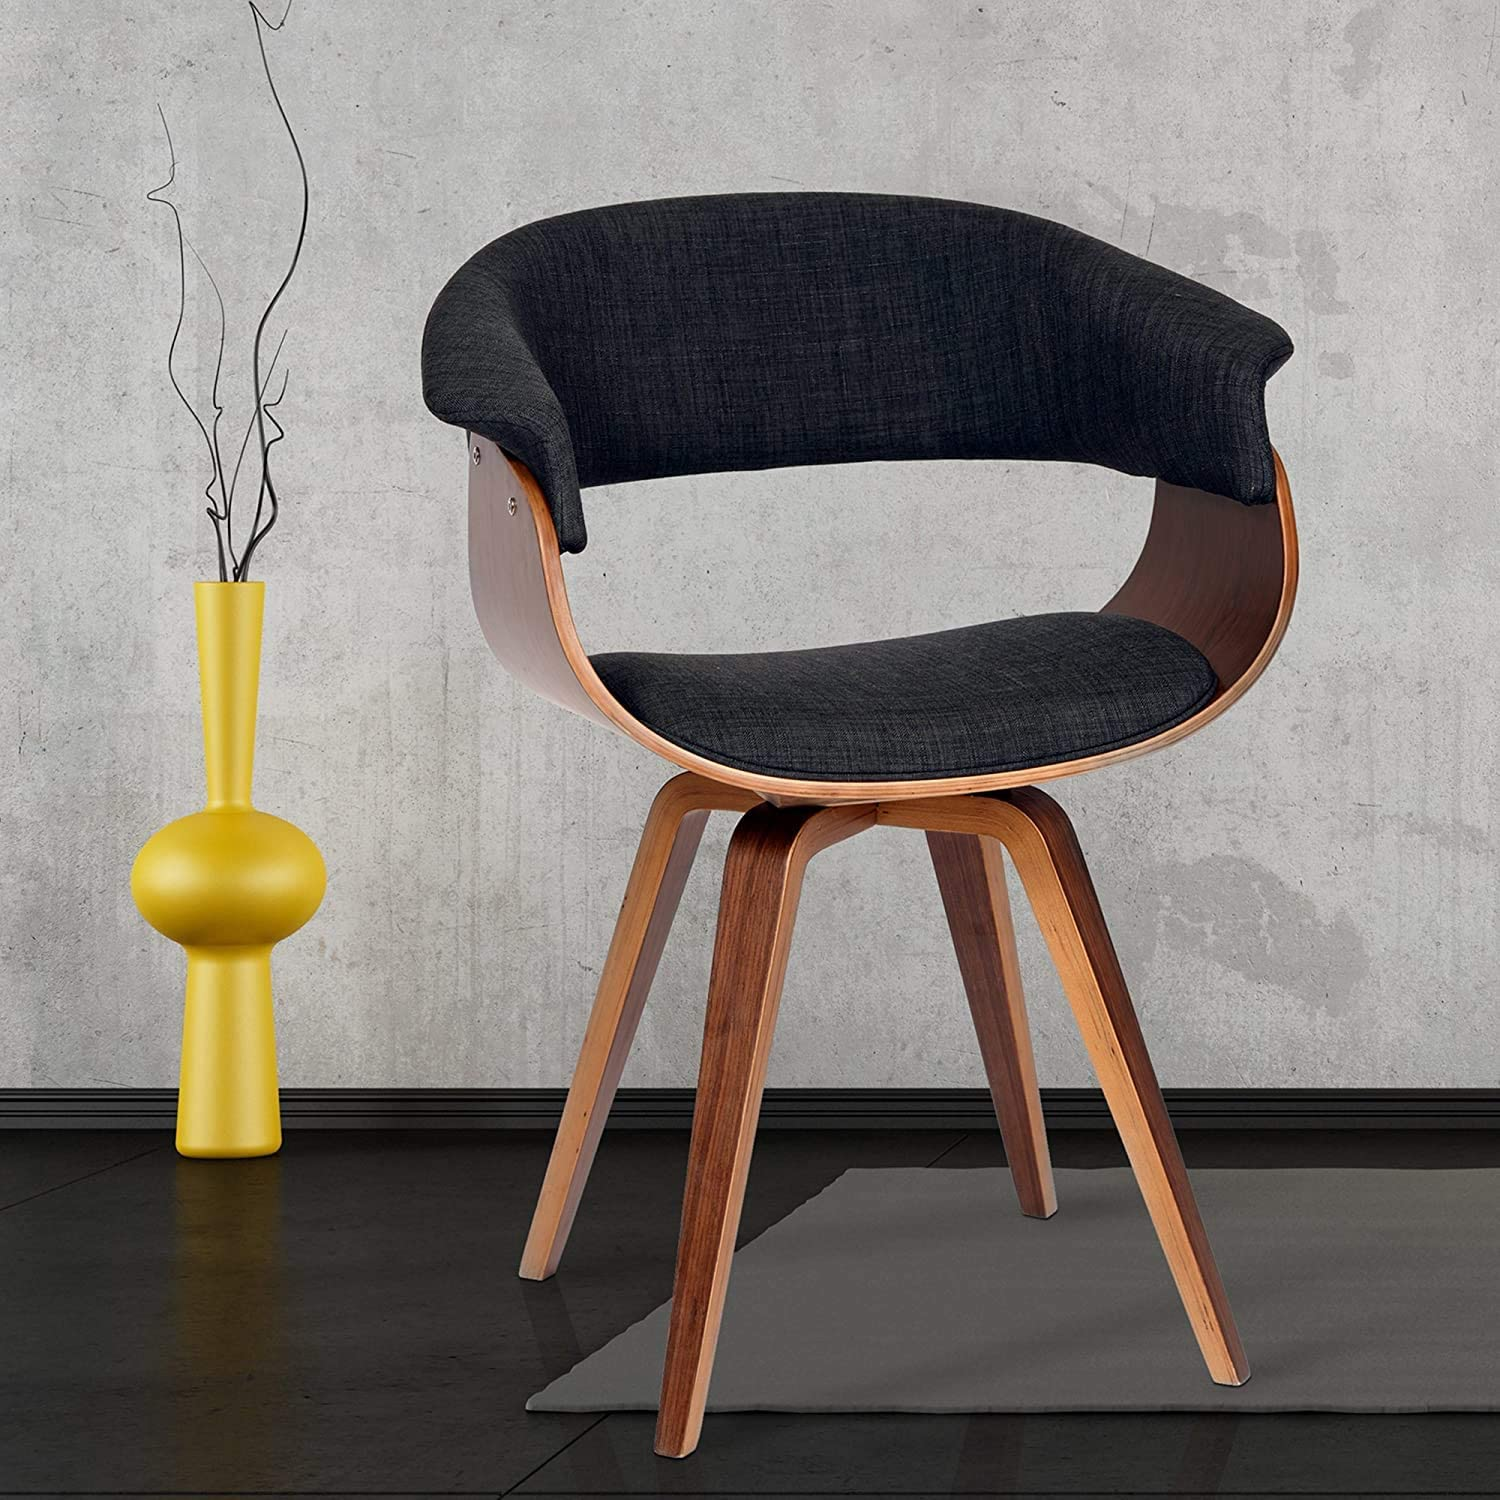 Best Seller on 2021 Mid-Century Armen Minimalist livingroom contemporary Chair with charcoal fabric and Walnut wood finish